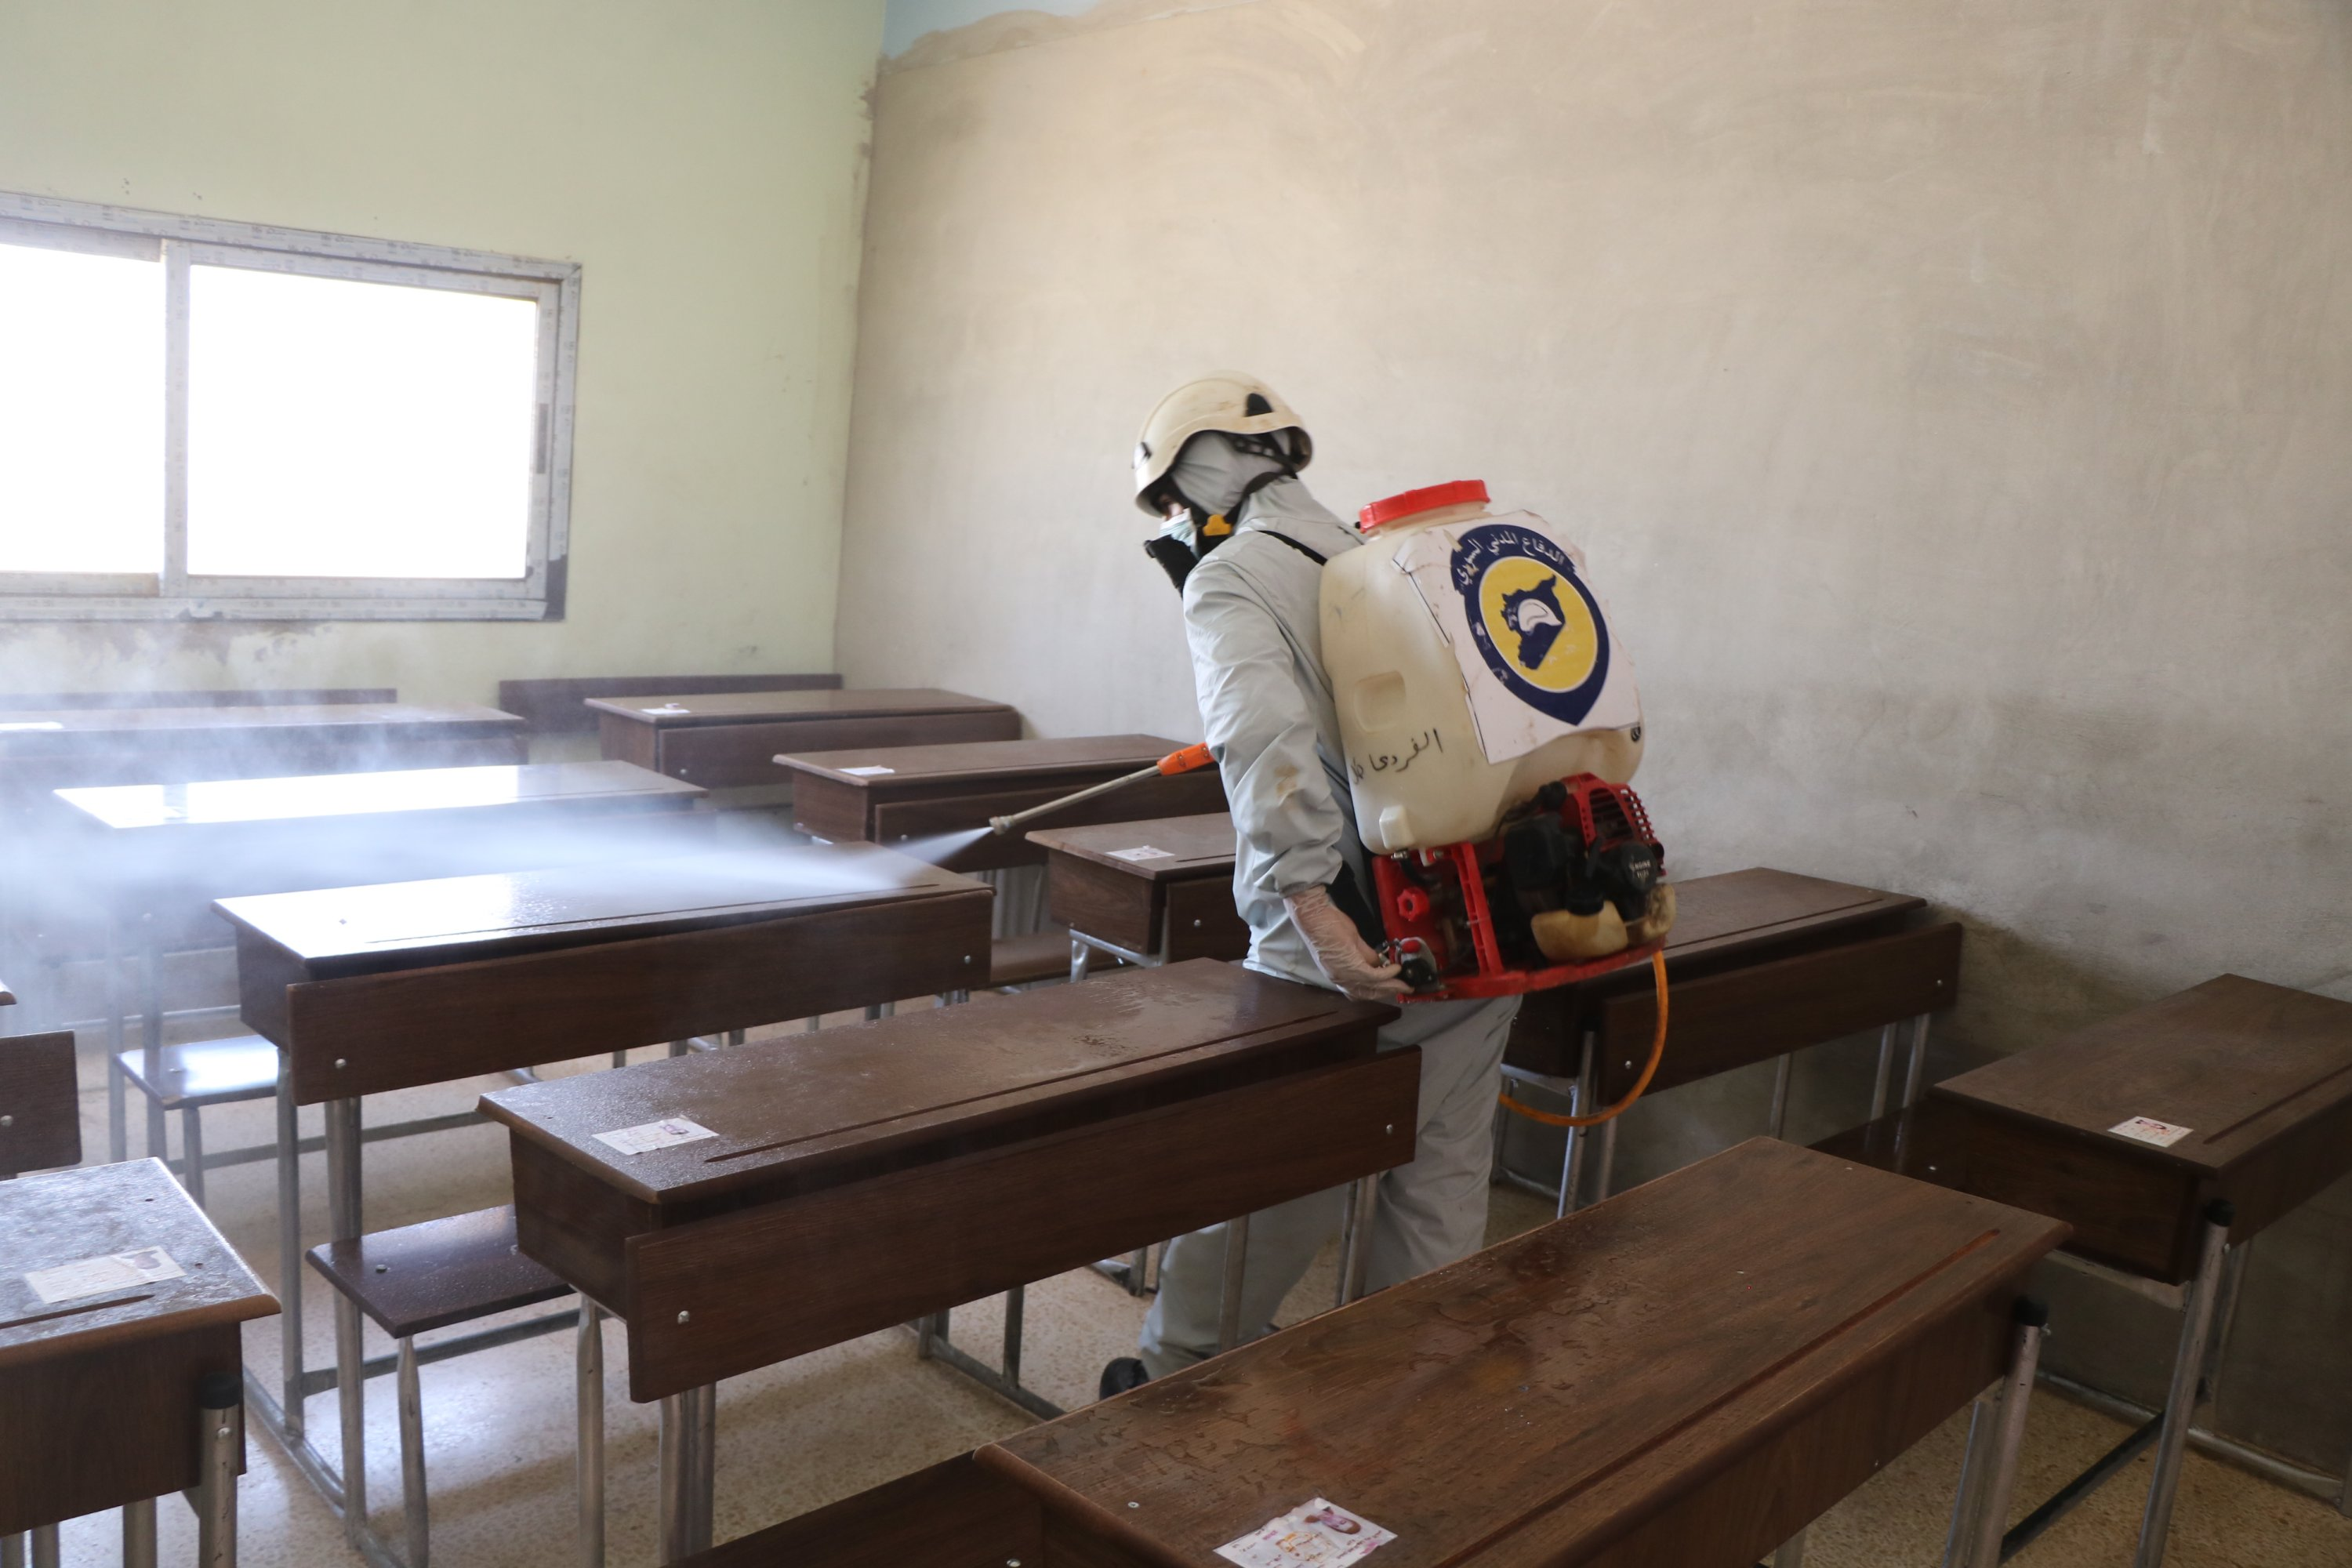 A White Helmets worker disinfects a school in Idlib as a measure against the coronavirus, July 15, 2020. (AA)